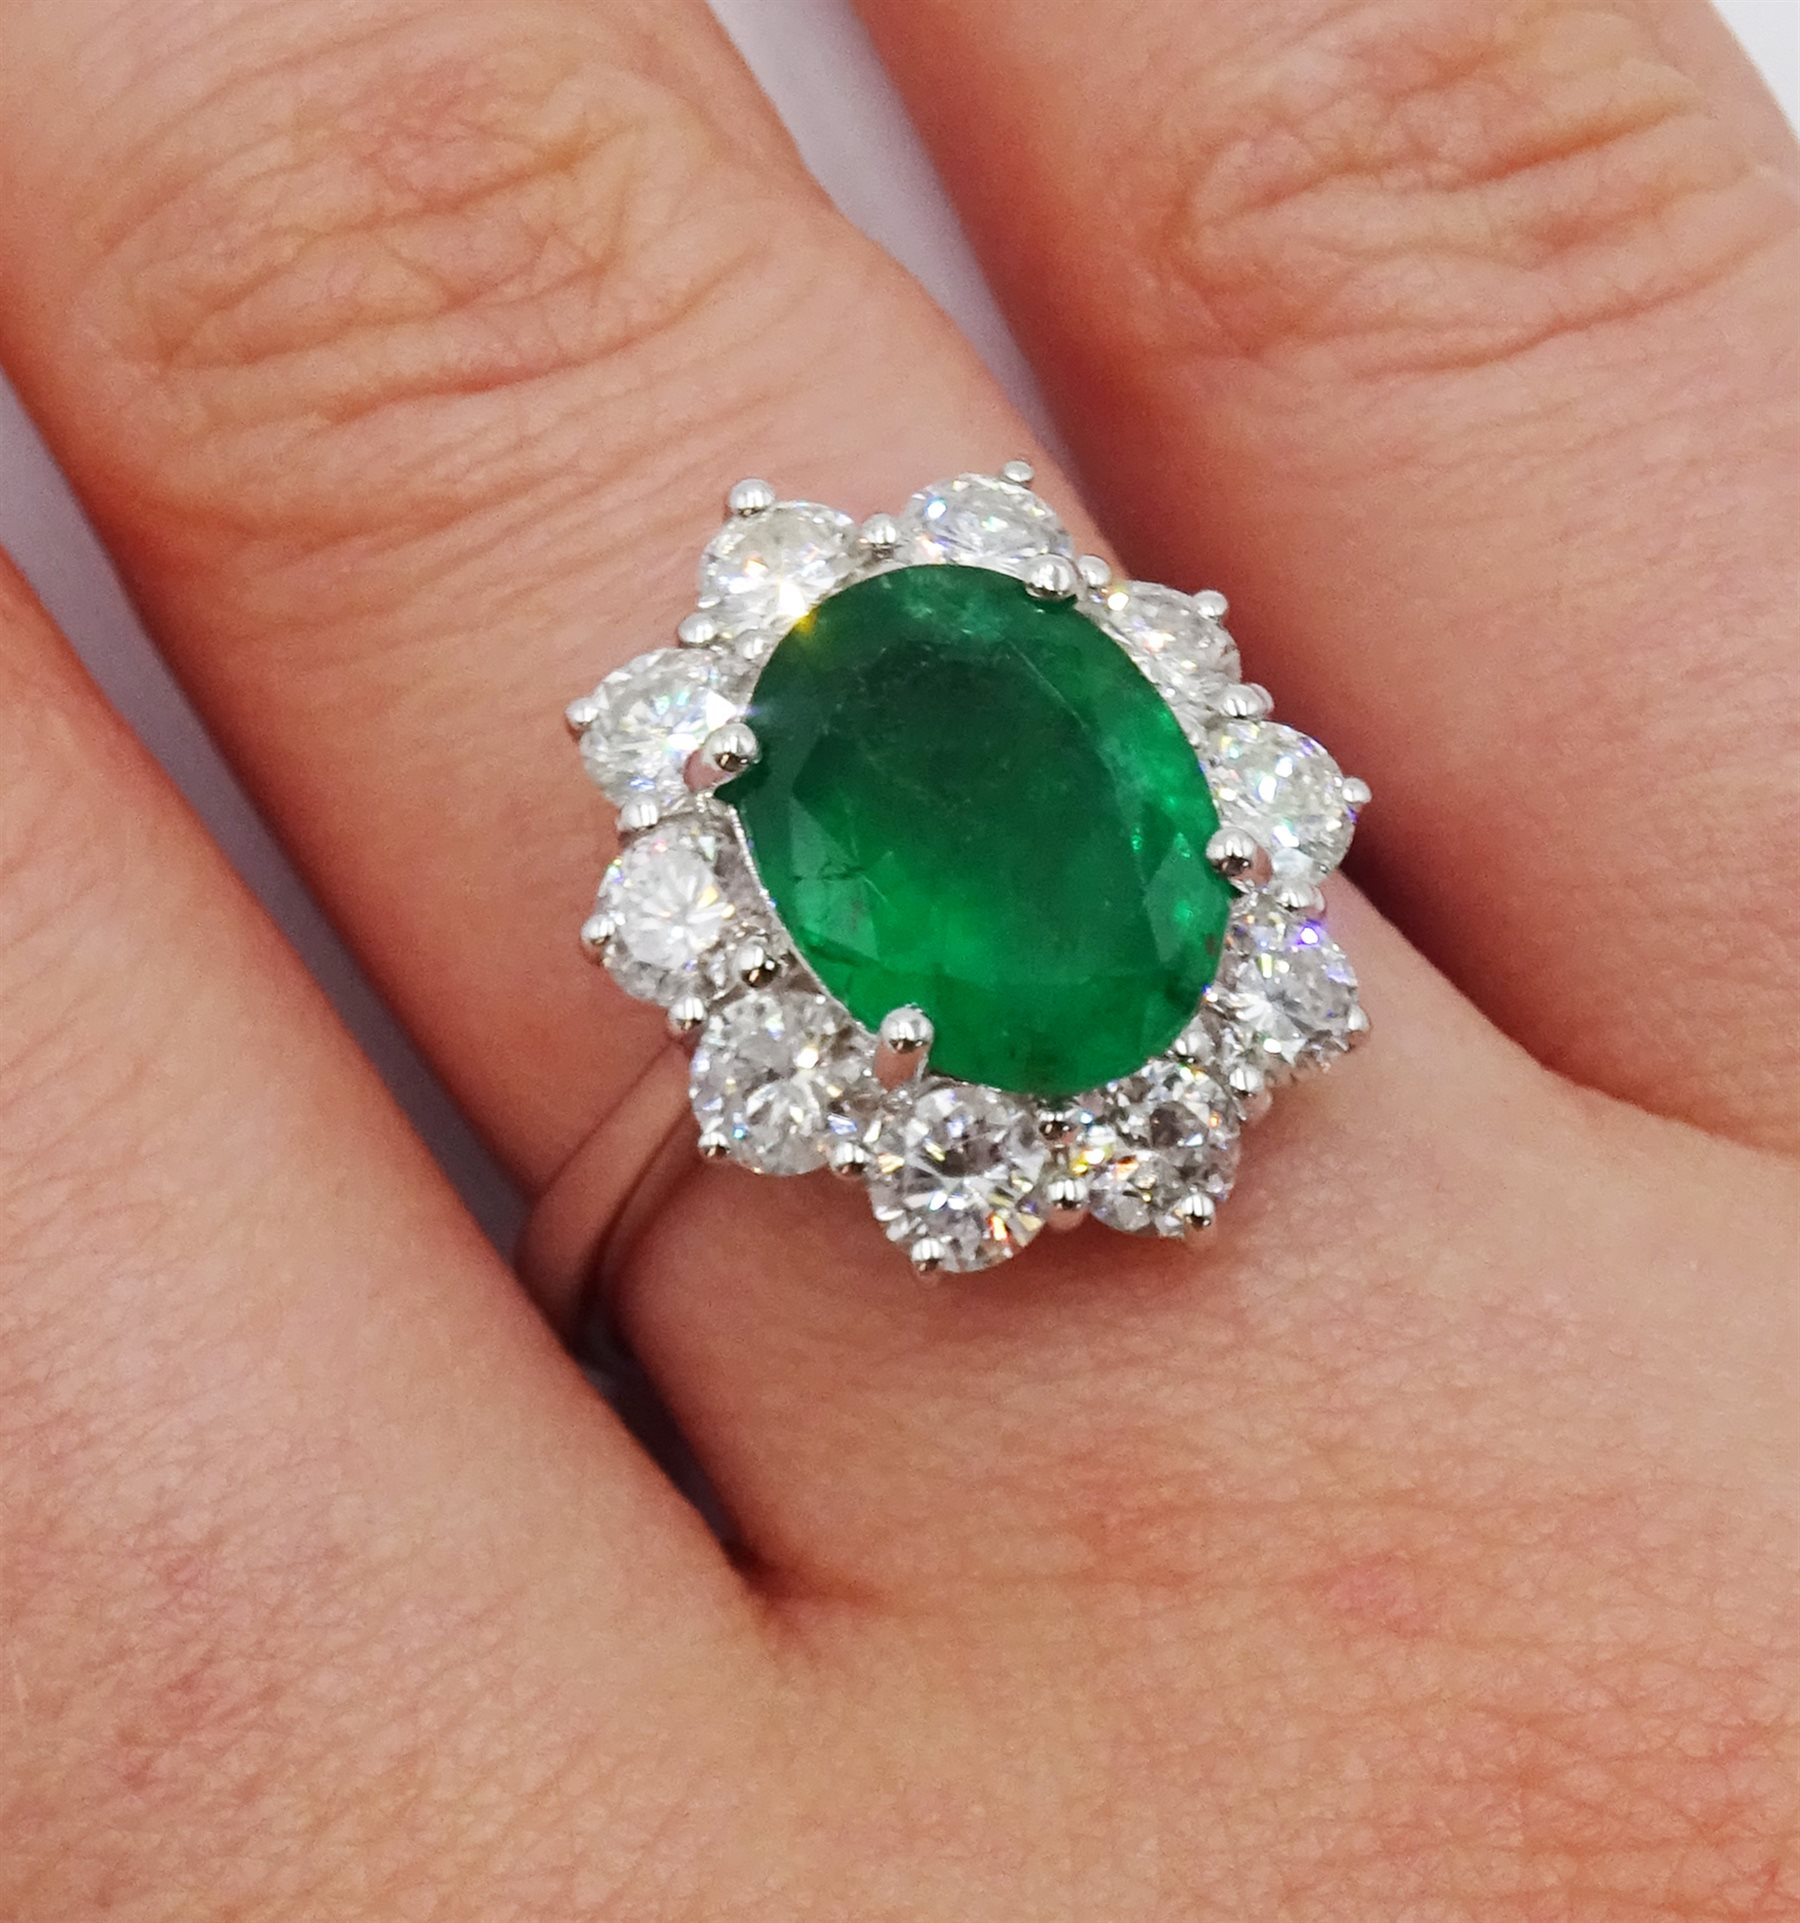 White gold oval emerald and round brilliant cut diamond ring - Image 2 of 5